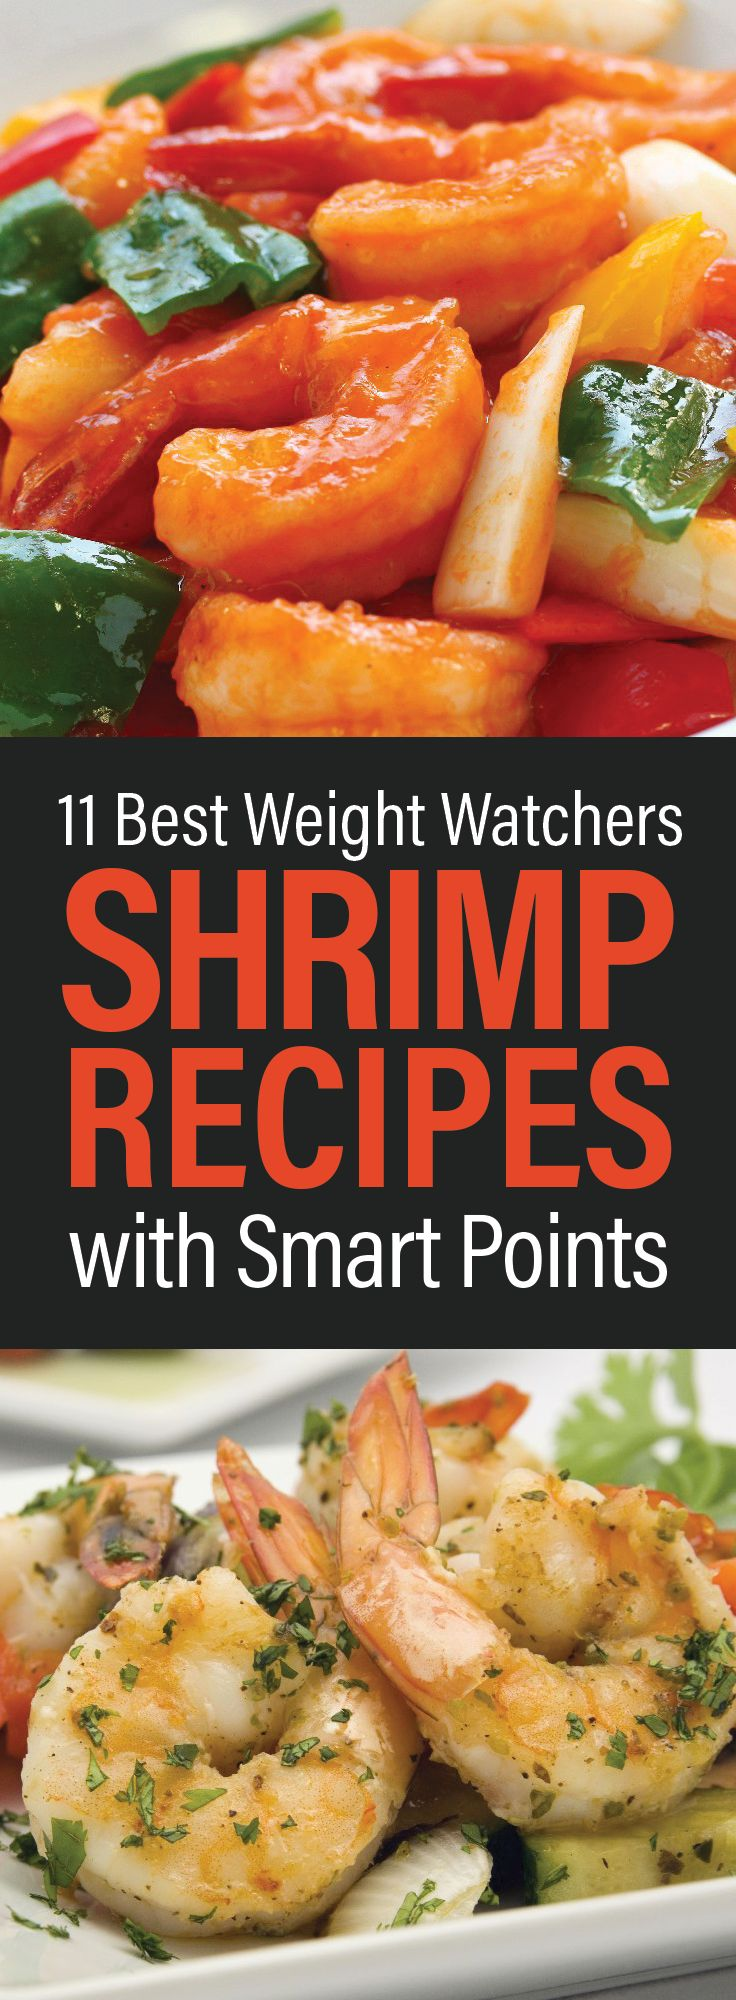 11 Weight Watchers Shrimp Recipes with SmartPoints including Shrimp Scampi, Coconut Shrimp, Kabobs, Hunan Shrimp, Baked Shrimp, Kung Pao Shrimp, and more!